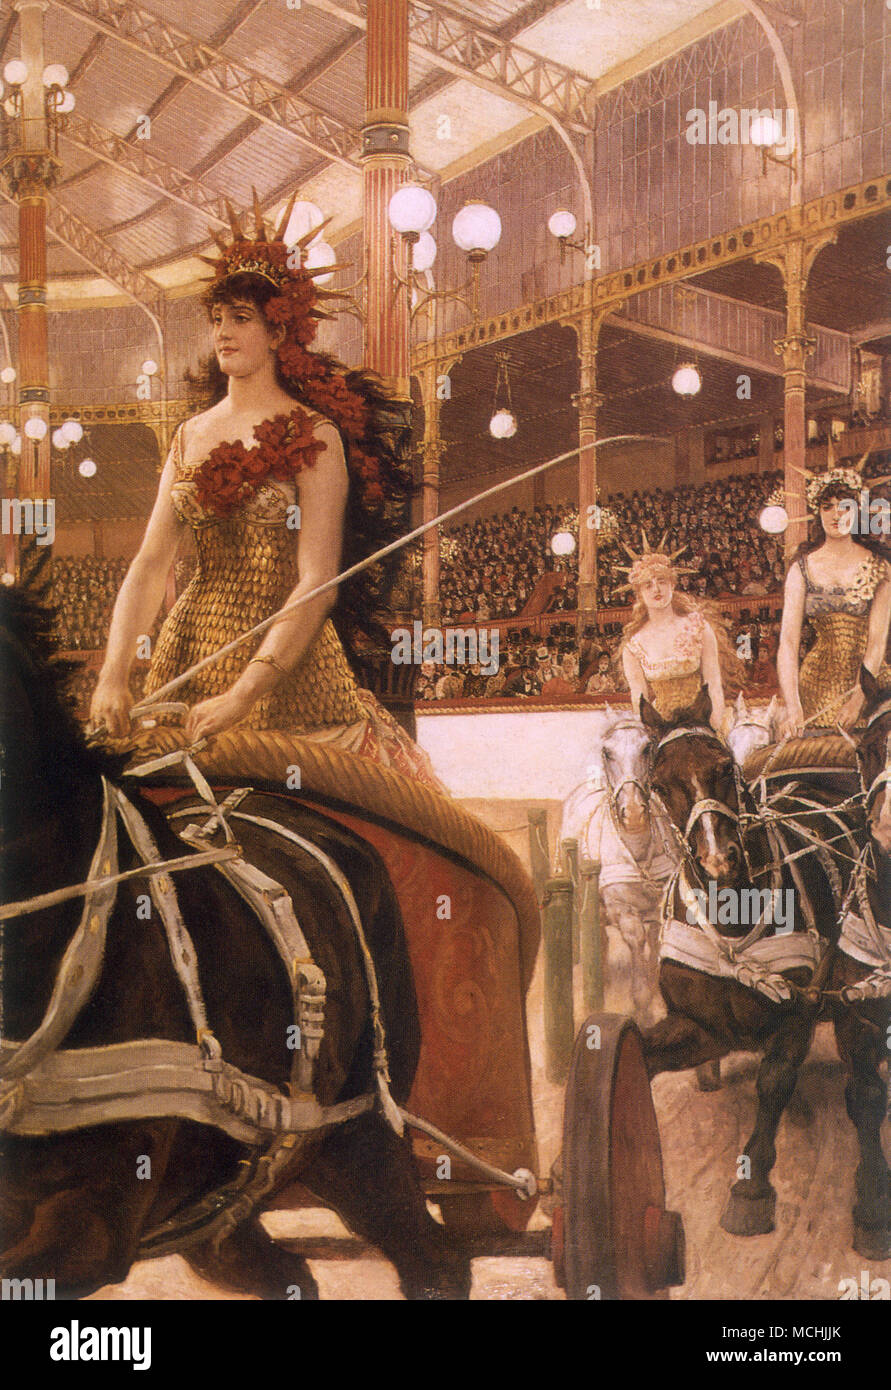 Ladies of the Cars, The (Les Dames des Chars) Stock Photo